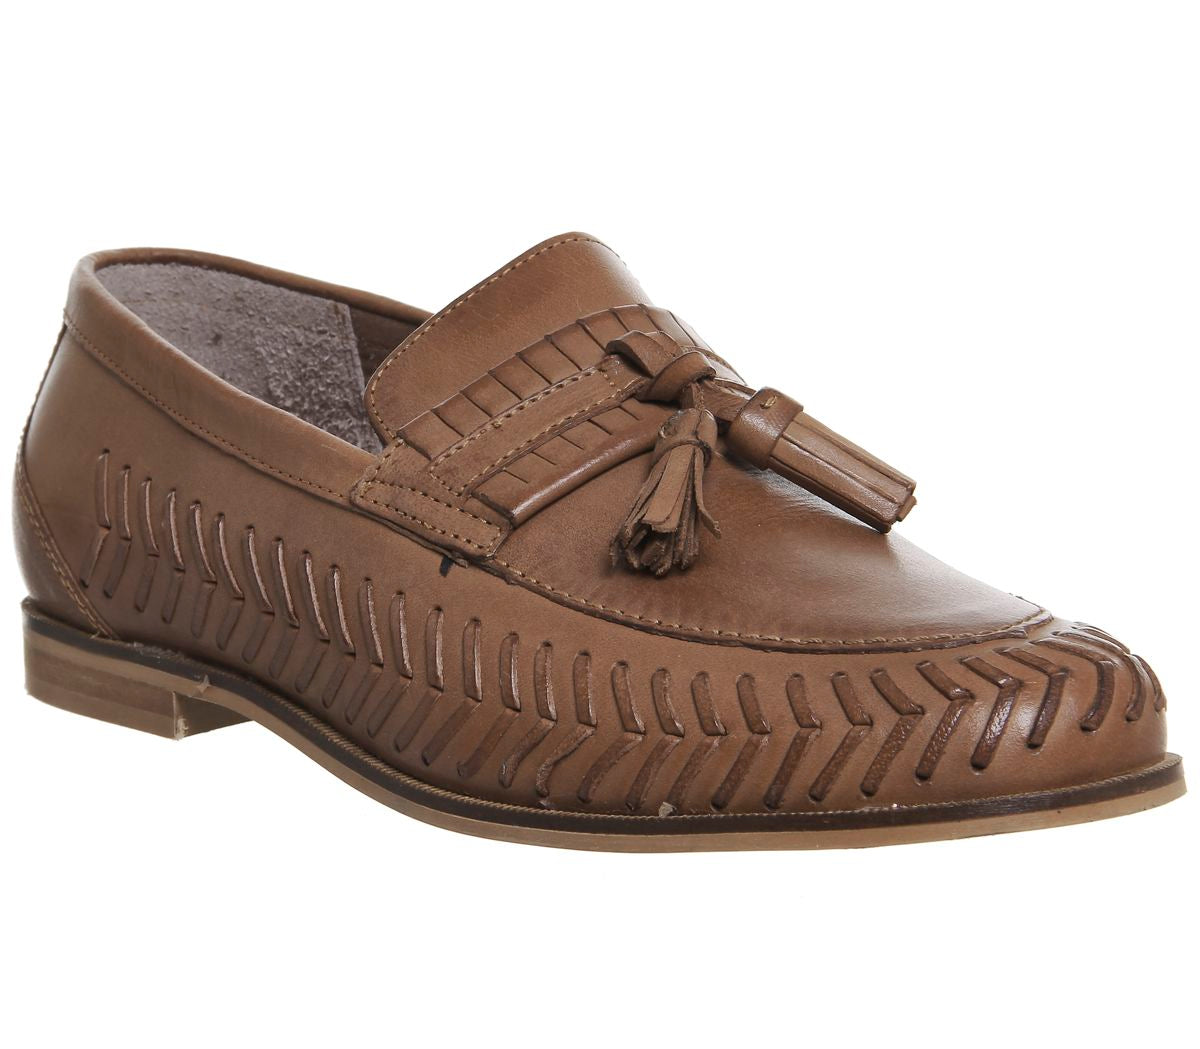 Mens Office Hoxton Woven Loafers Tan Leather